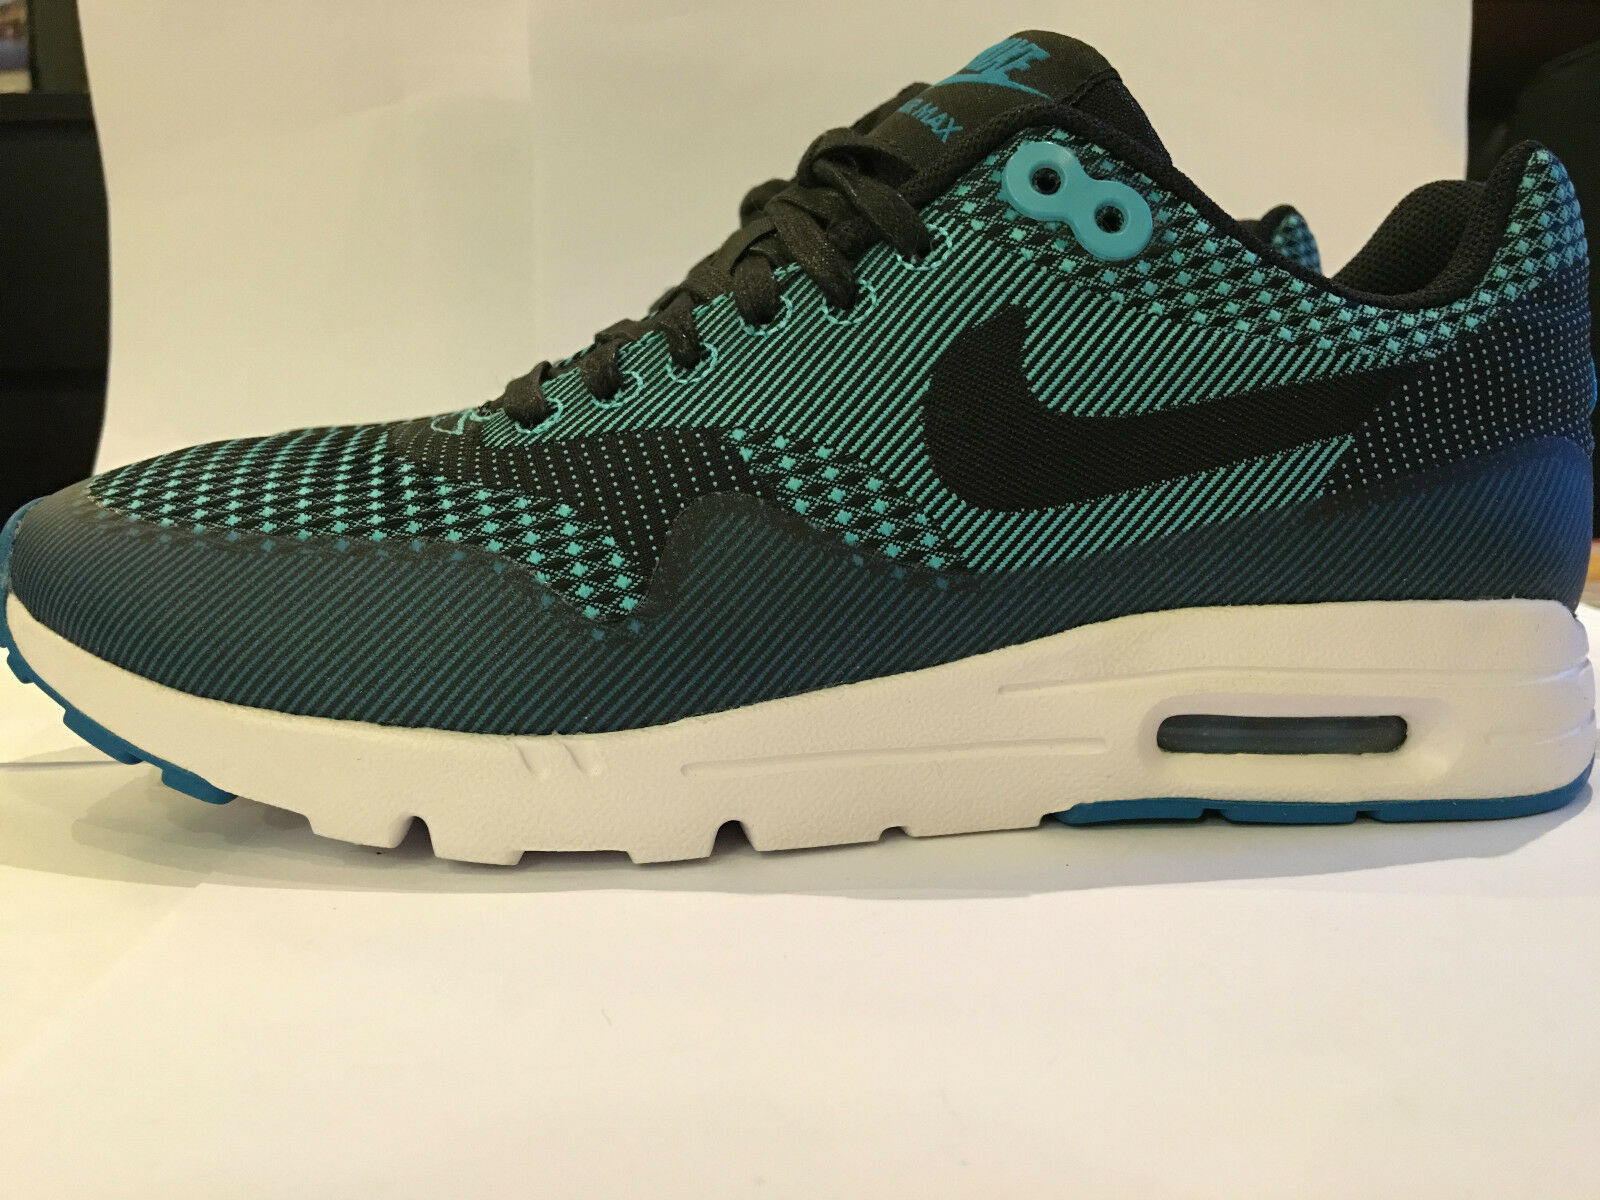 Nike Air Max 1 Ultra JCRD Jacquard4 EUR 37.5 704999-400 NEW